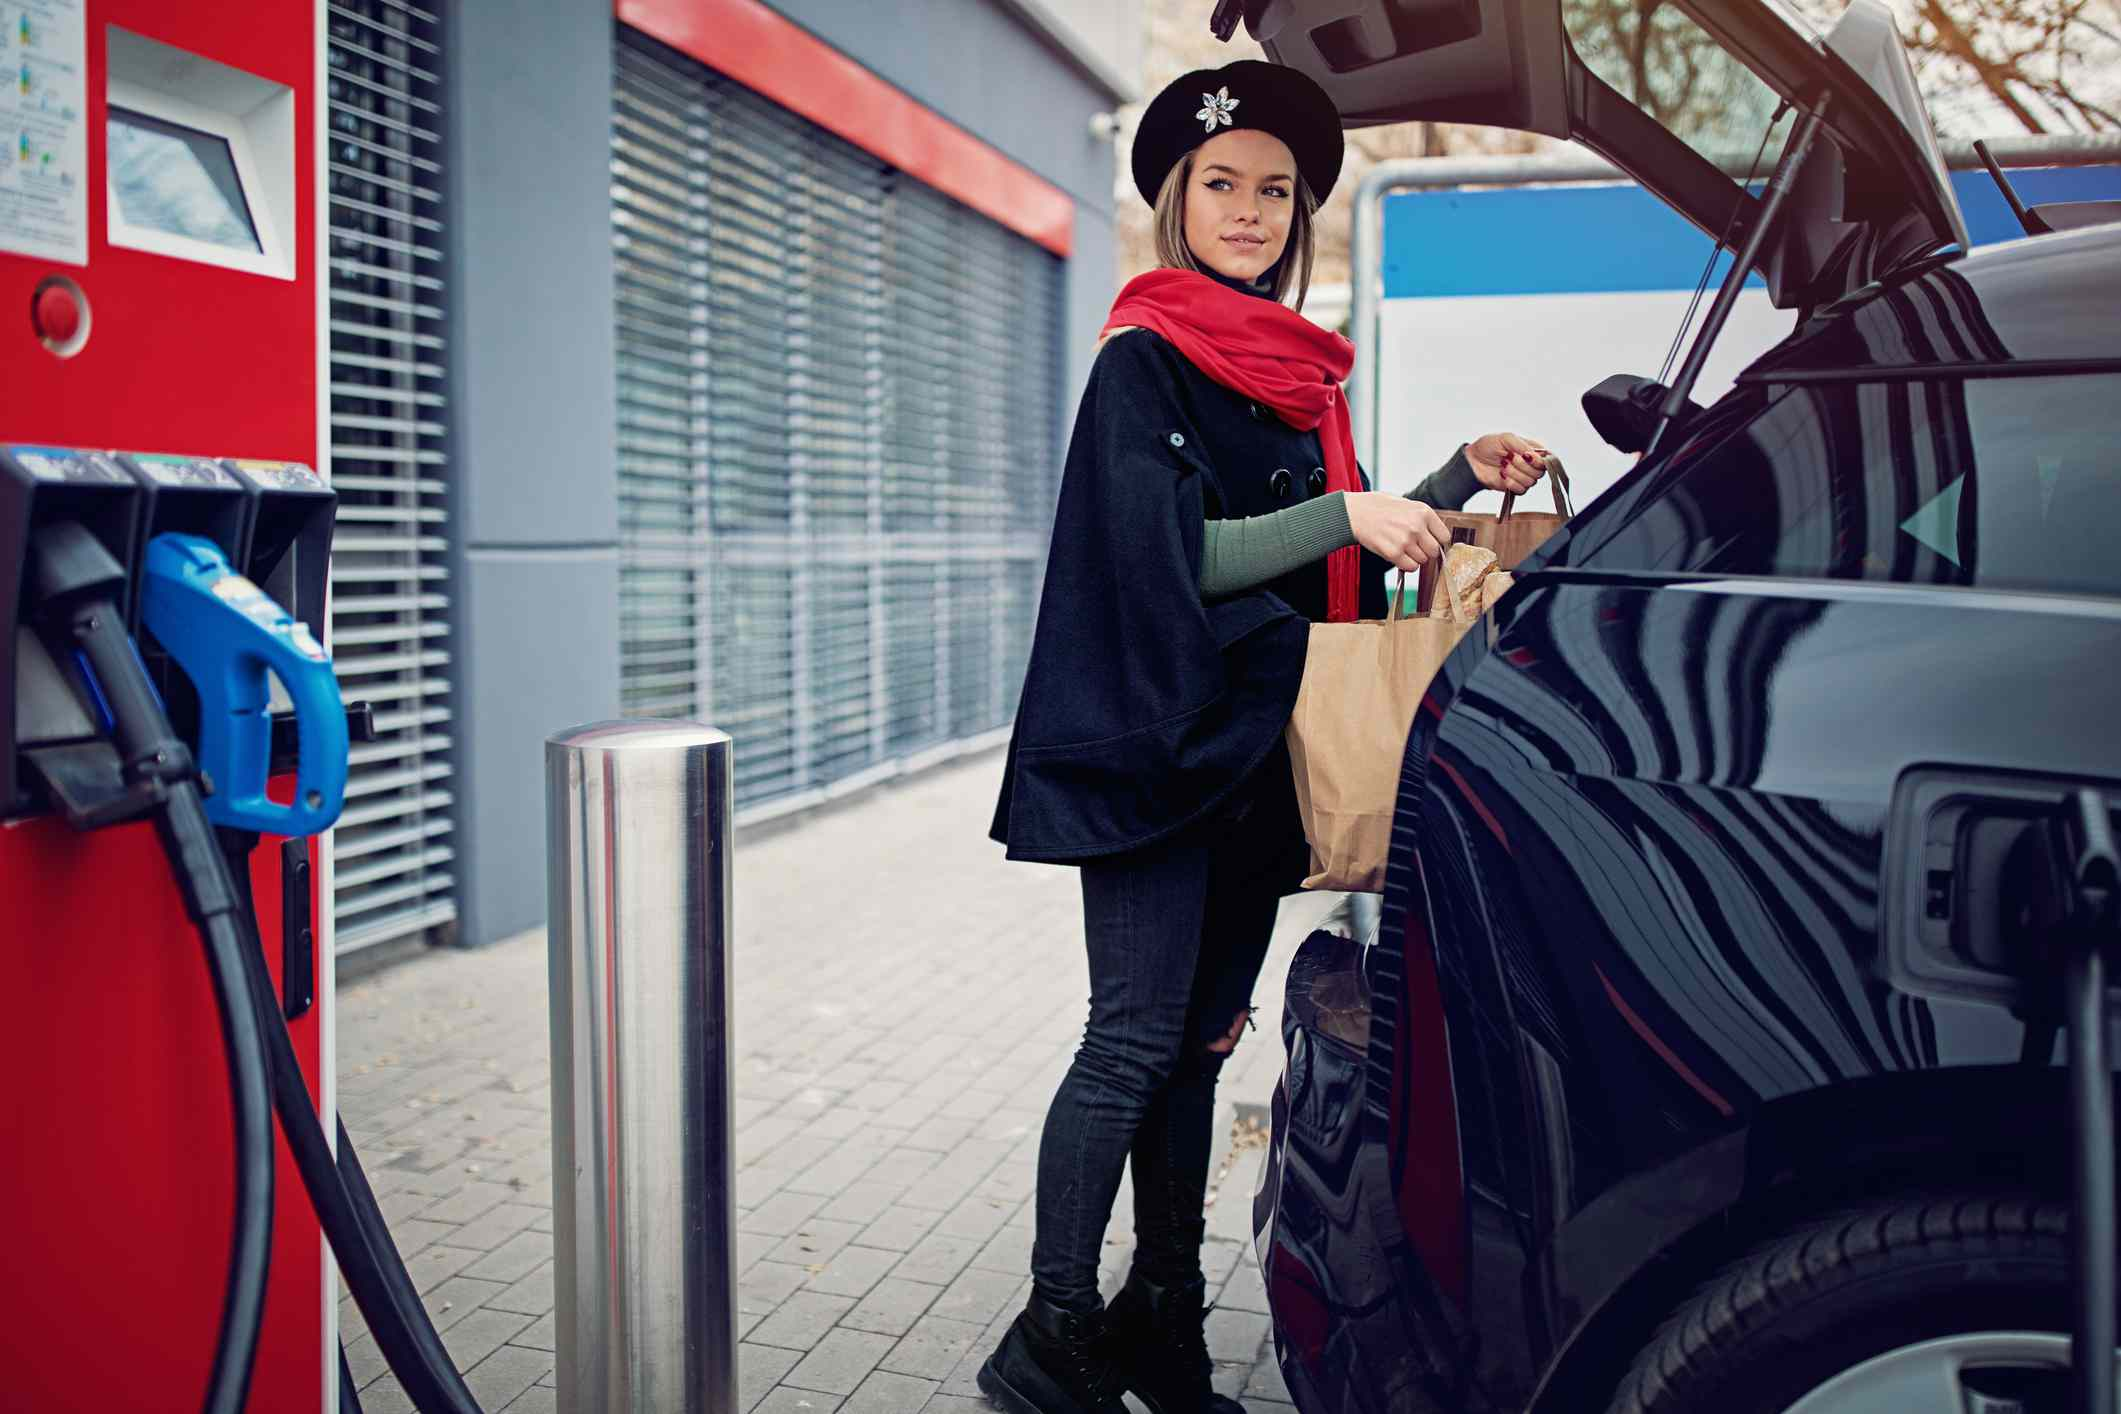 Woman loading groceries into EV at supermarket charging station,